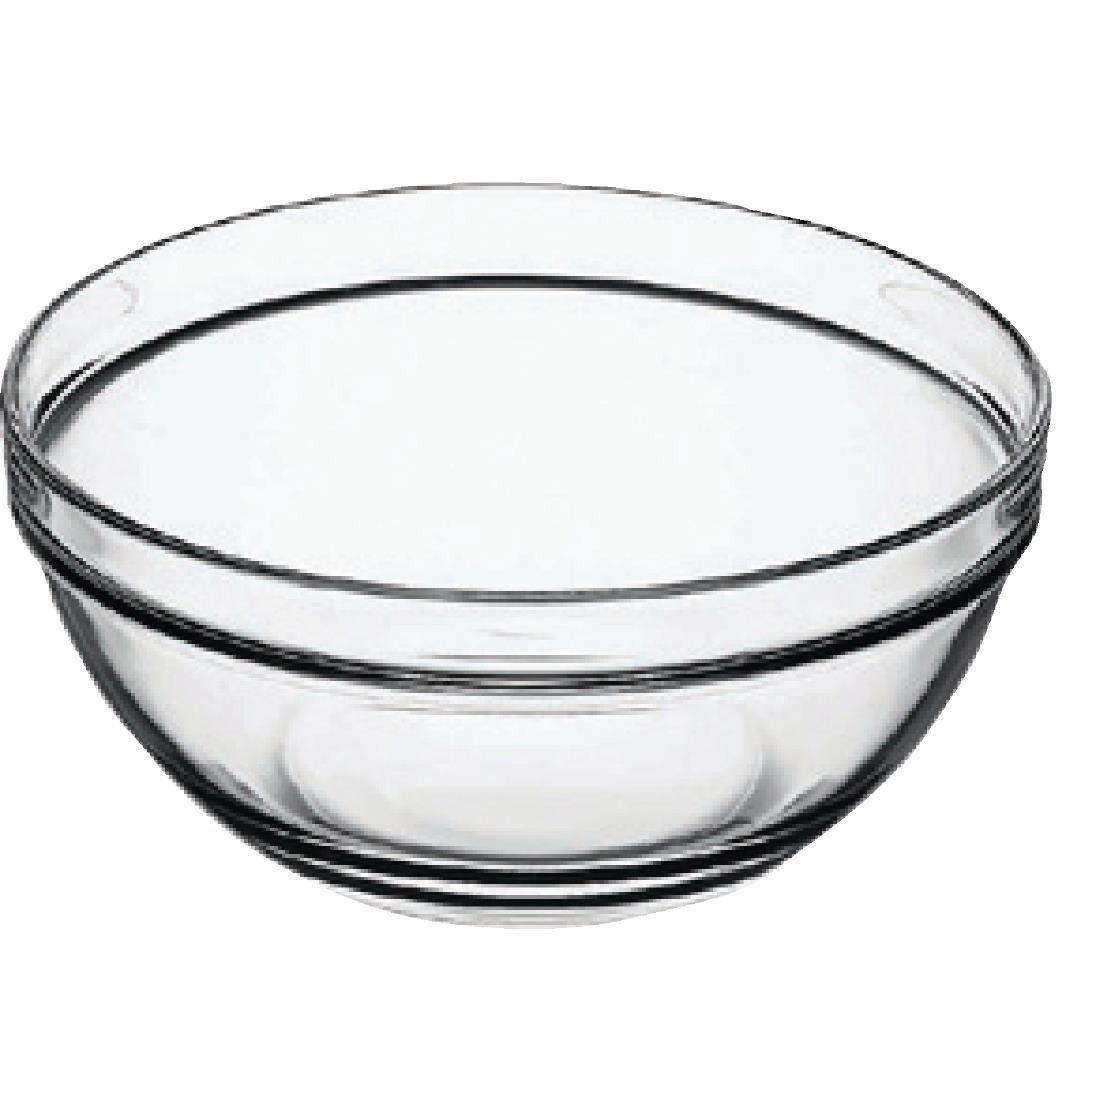 "Arc Chefs Glass Bowl - 126ml 4.5oz 9cm 3.6"" (Box 6) - E561"